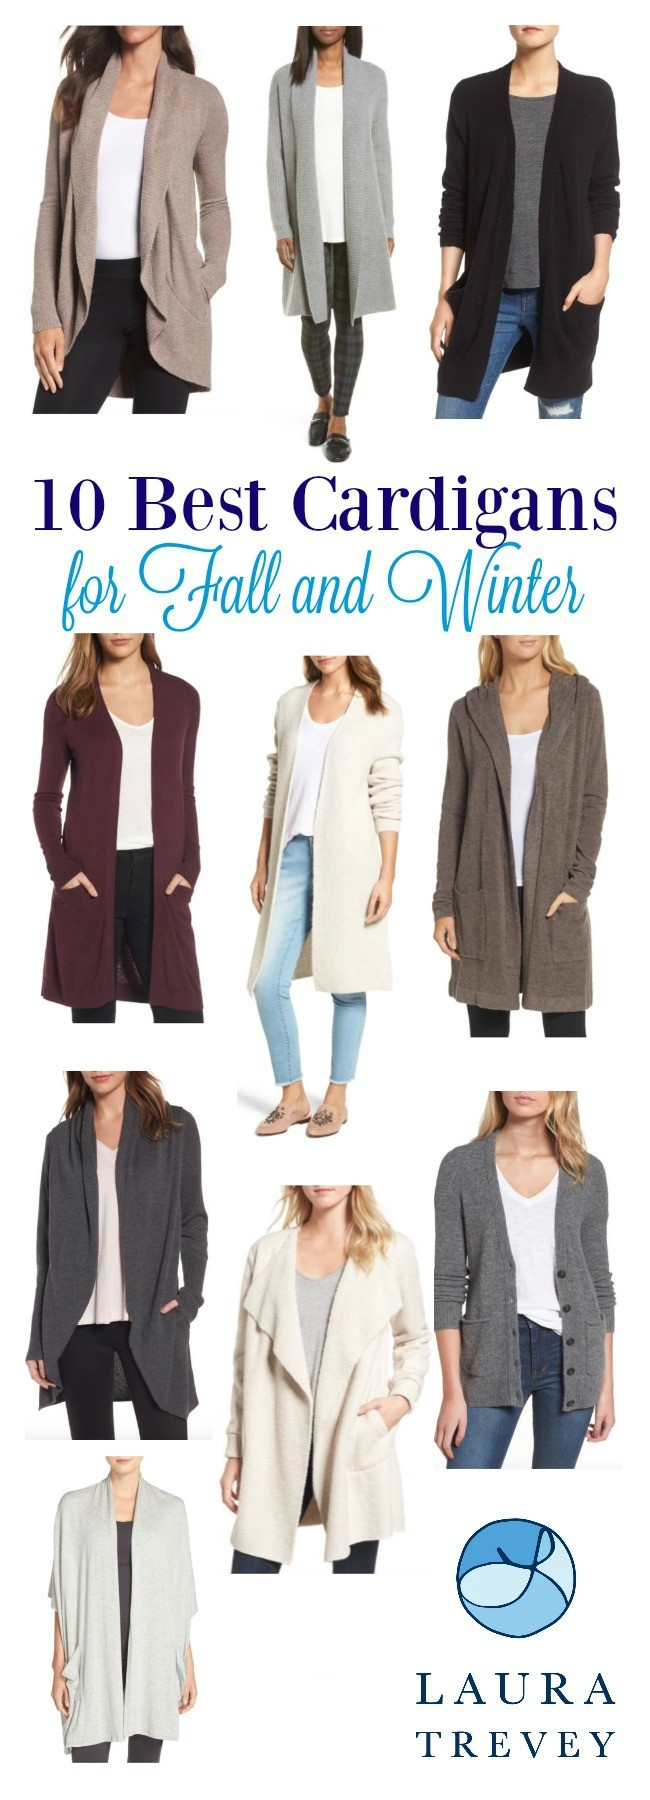 10 Best Cardigans For Fall and Winter | Laura Trevey